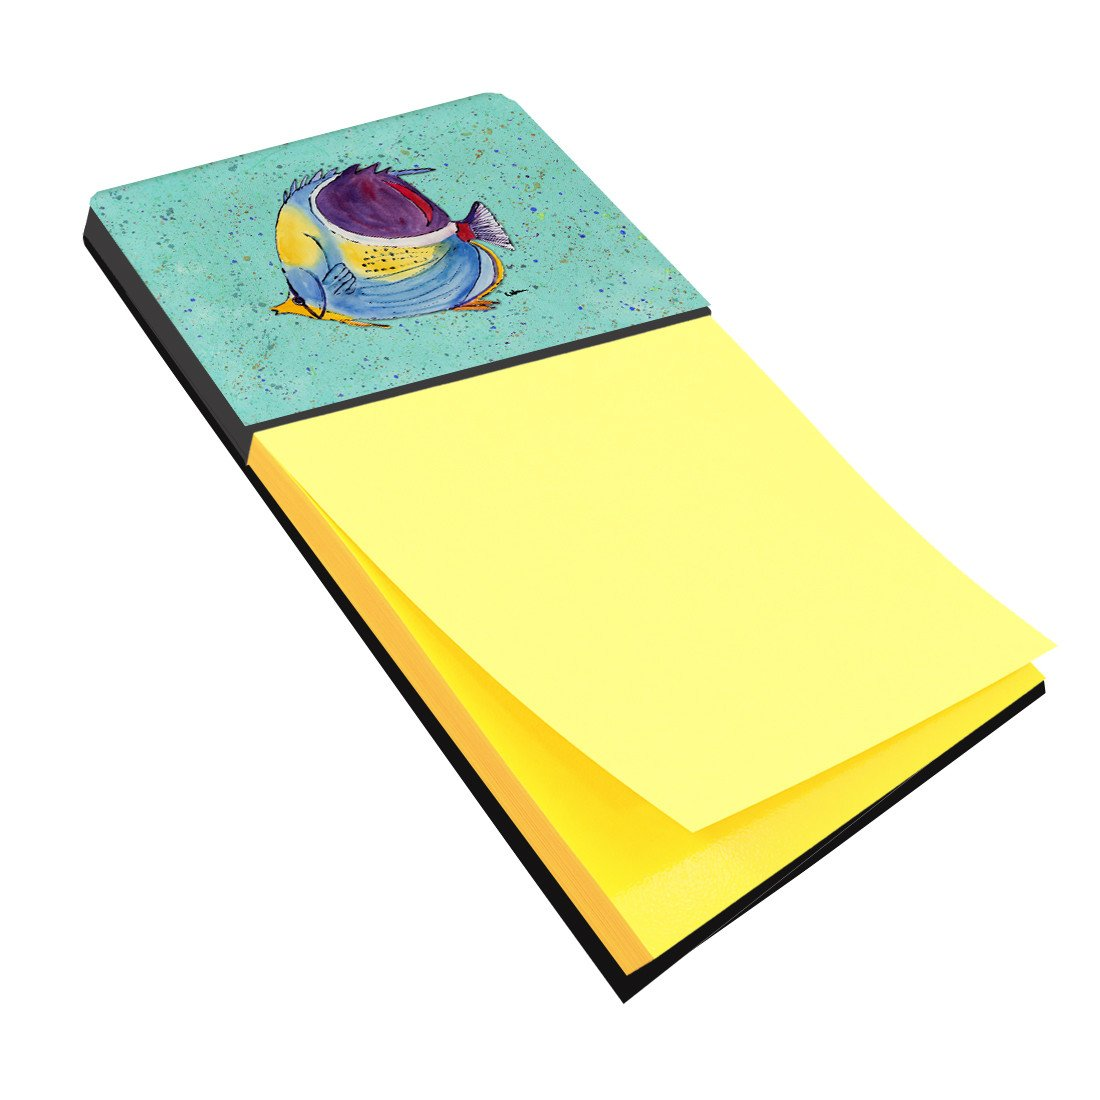 Tropical Fish on Teal Refiillable Sticky Note Holder or Postit Note Dispenser 8576SN by Caroline's Treasures